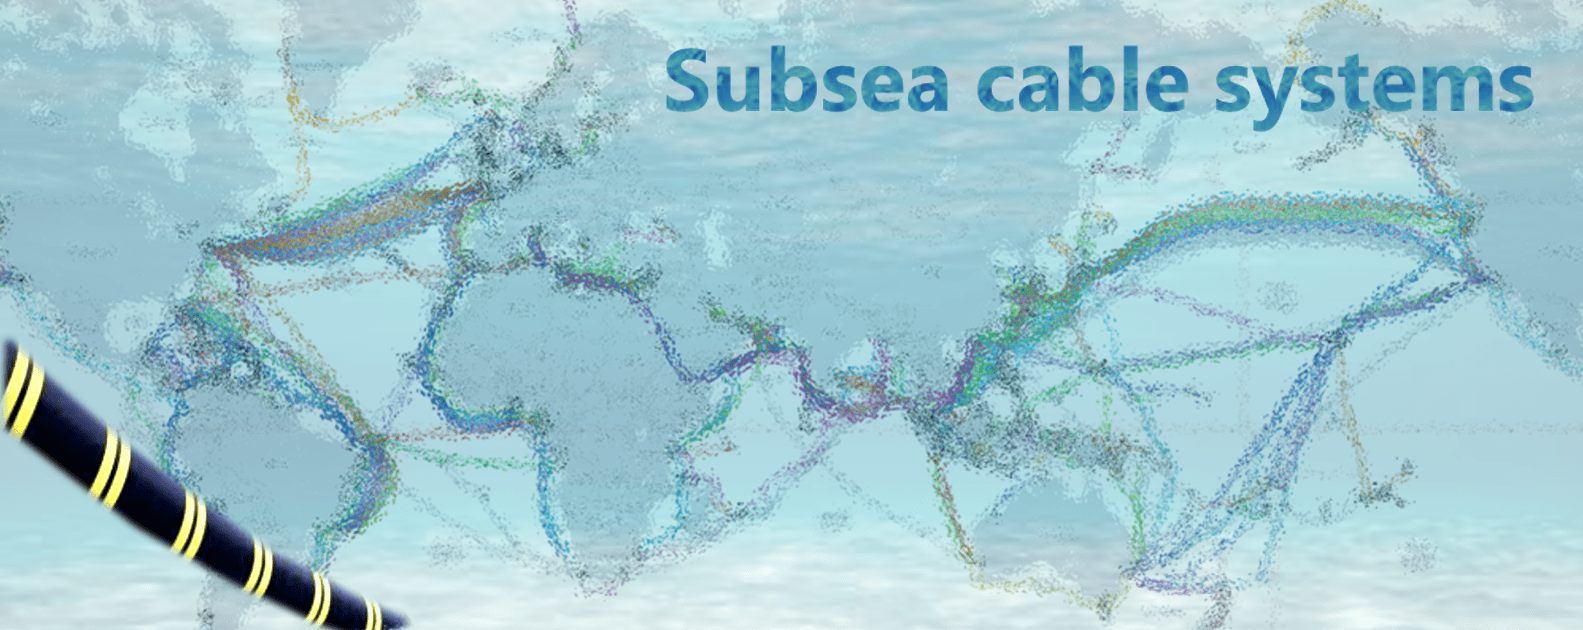 Subsea optical fibre cables